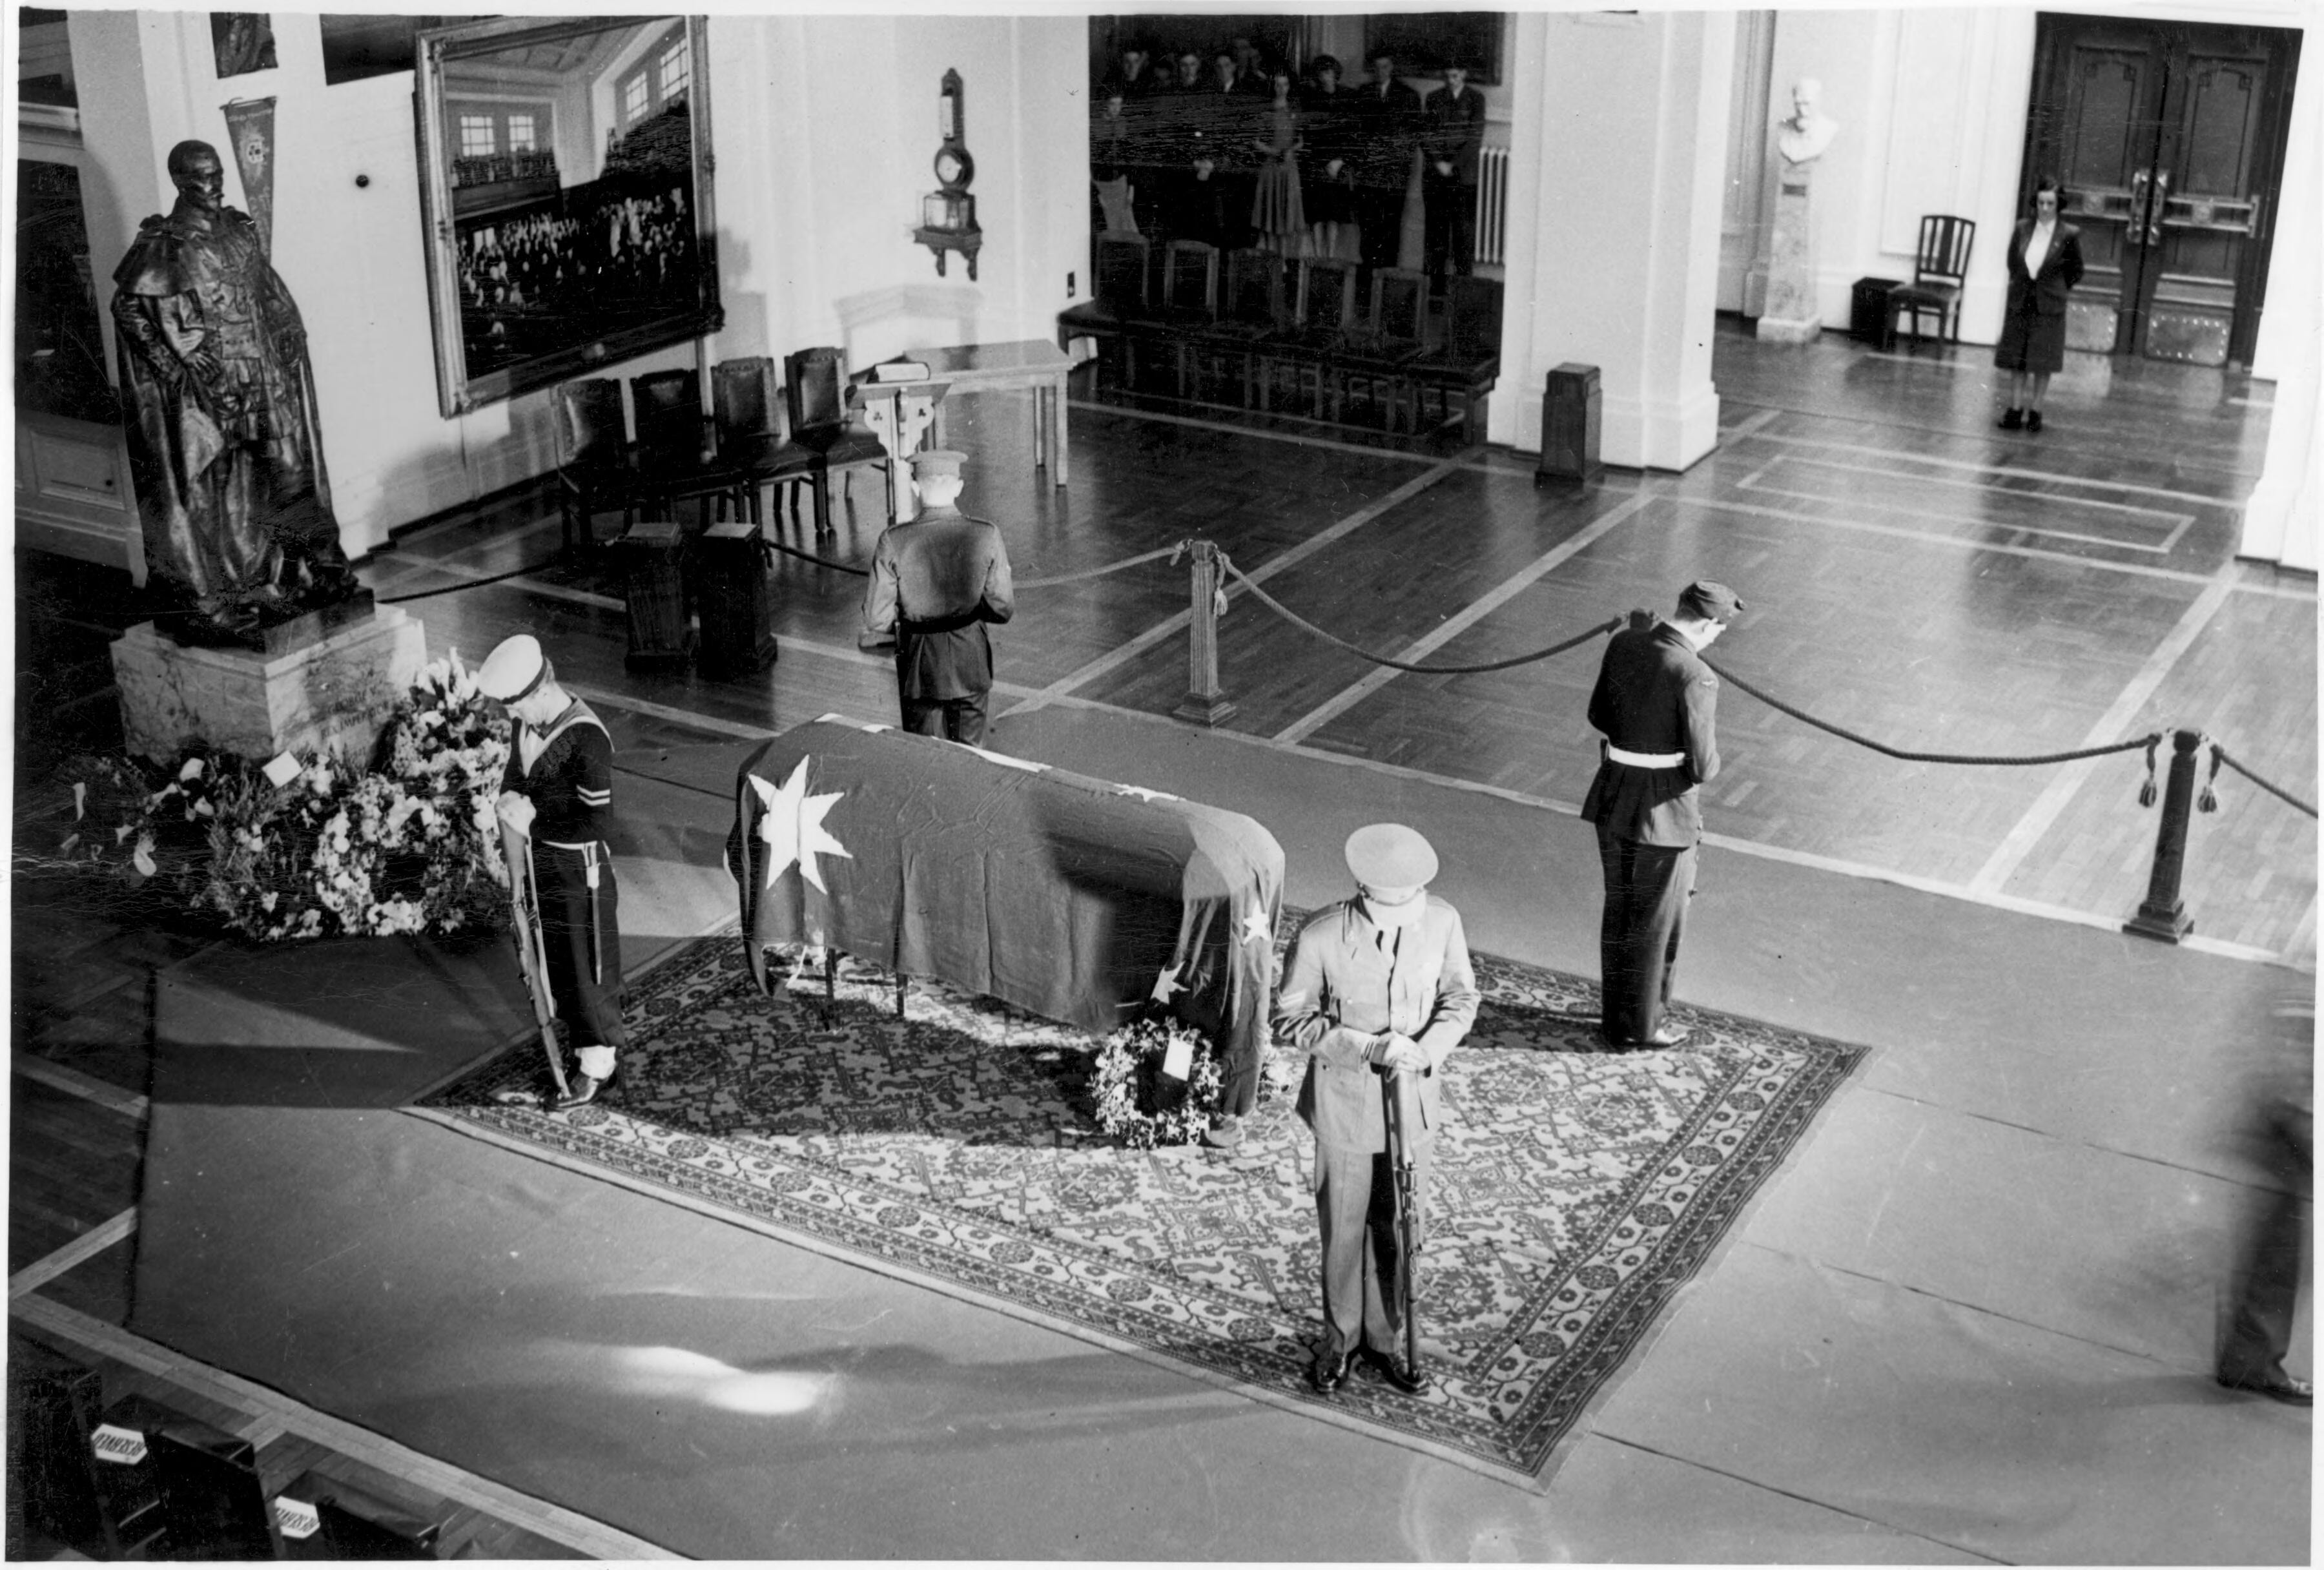 The coffin of John Curtin, the 14th Prime Minister of Australia, lying in state inside King's Hall, Old Parliament House, Canberra on July 6, 1945 - State funeral